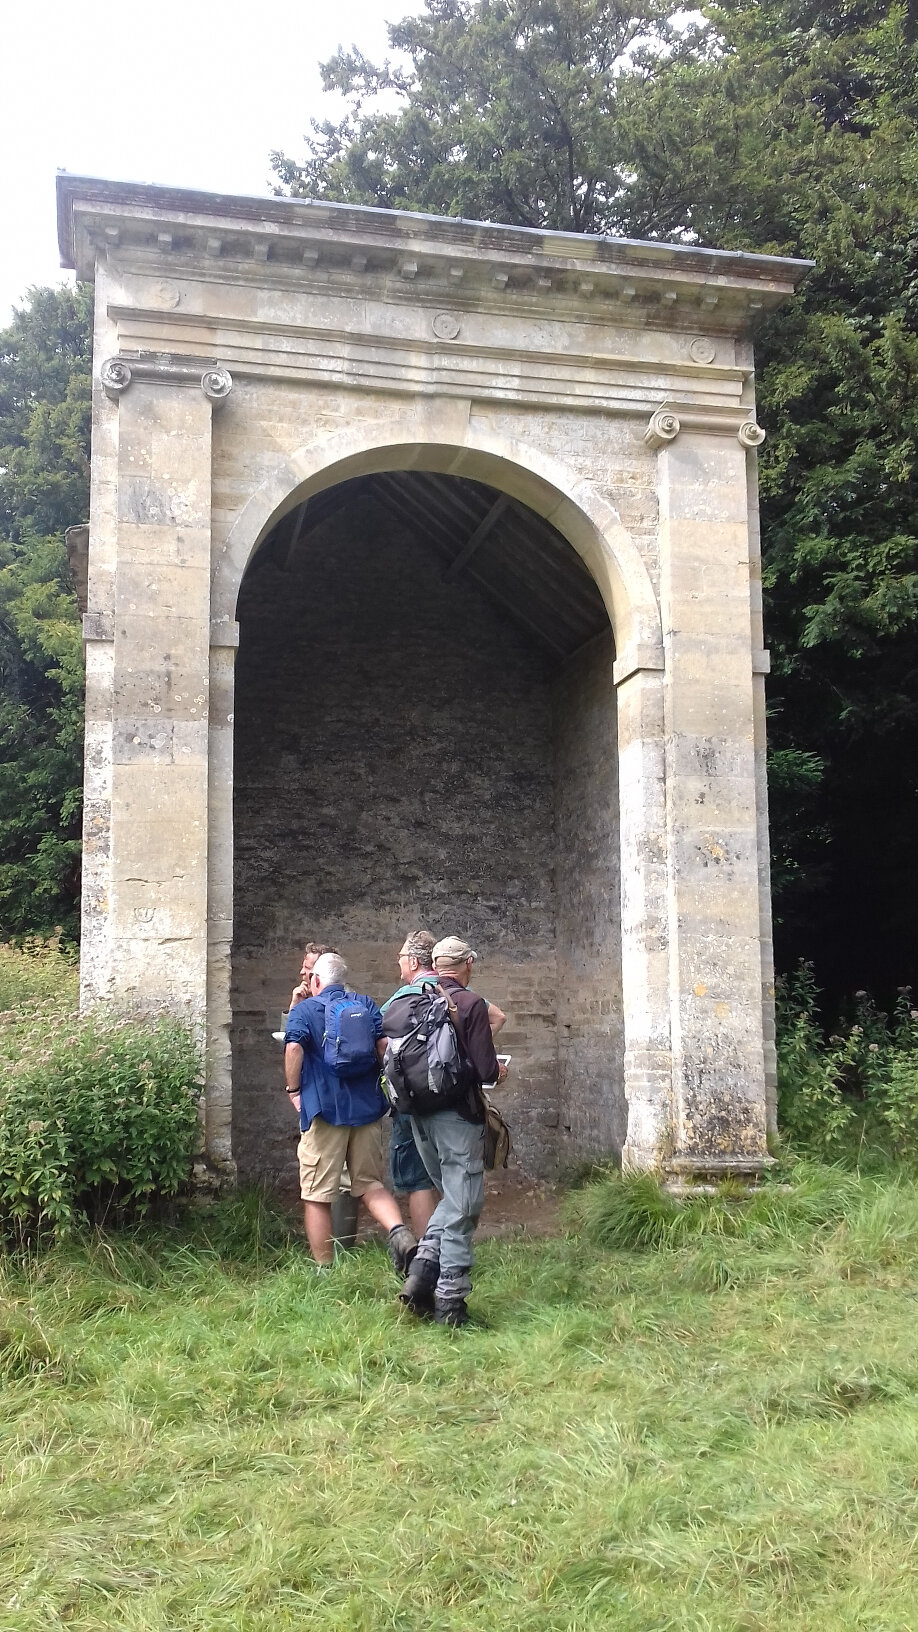 Walking and Podcasting: The Tempest, Sapperton, Cirencester and Walking Practices